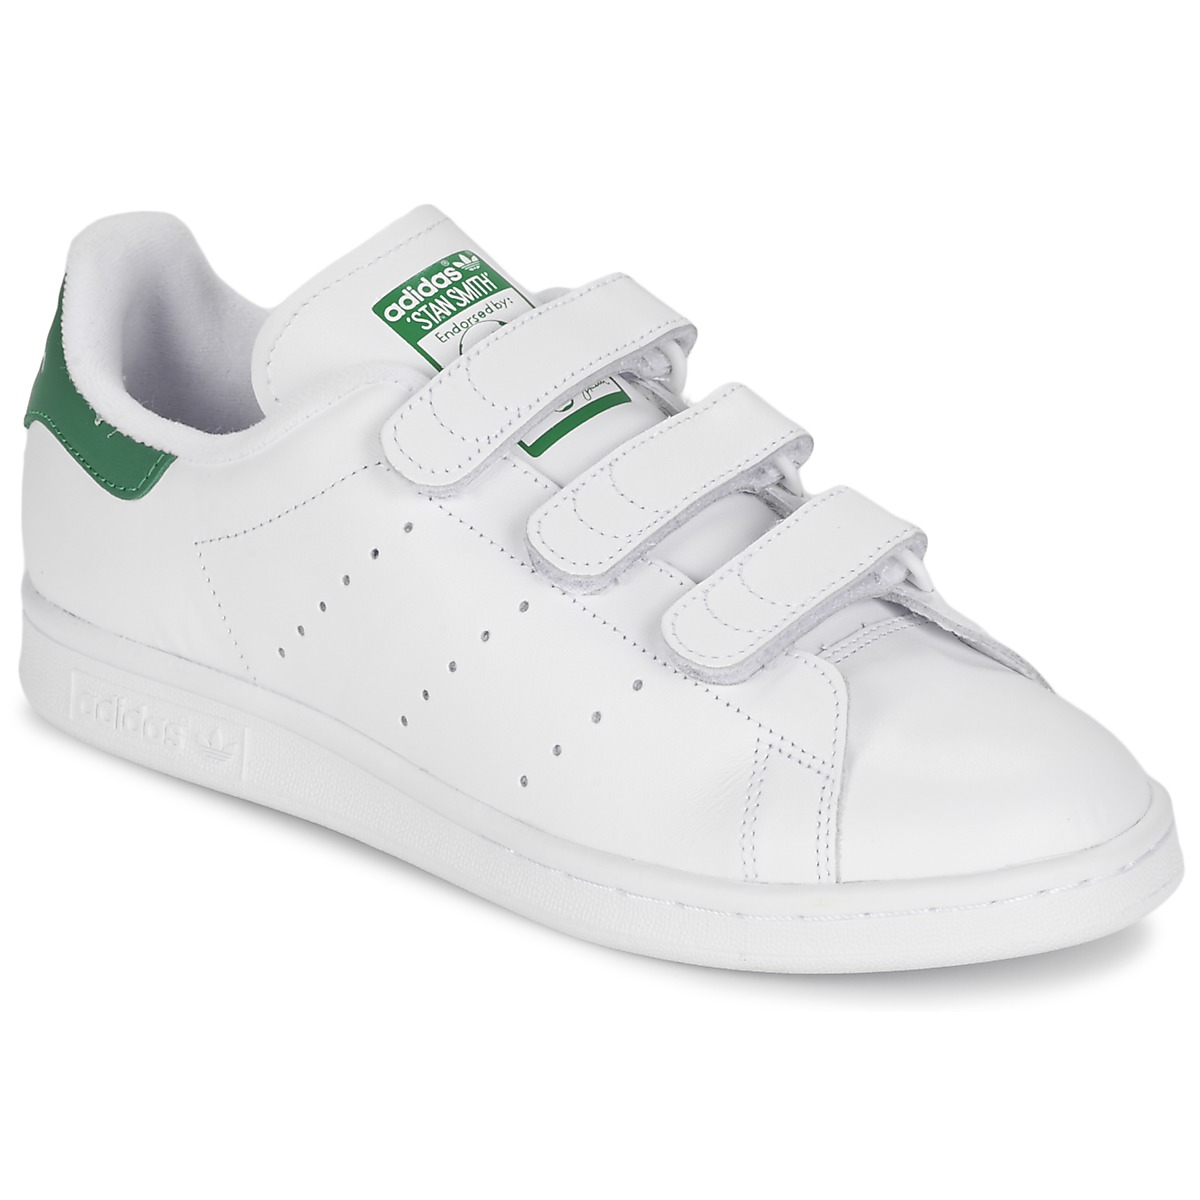 adidas originals stan smith cf blanc vert livraison gratuite avec chaussures. Black Bedroom Furniture Sets. Home Design Ideas